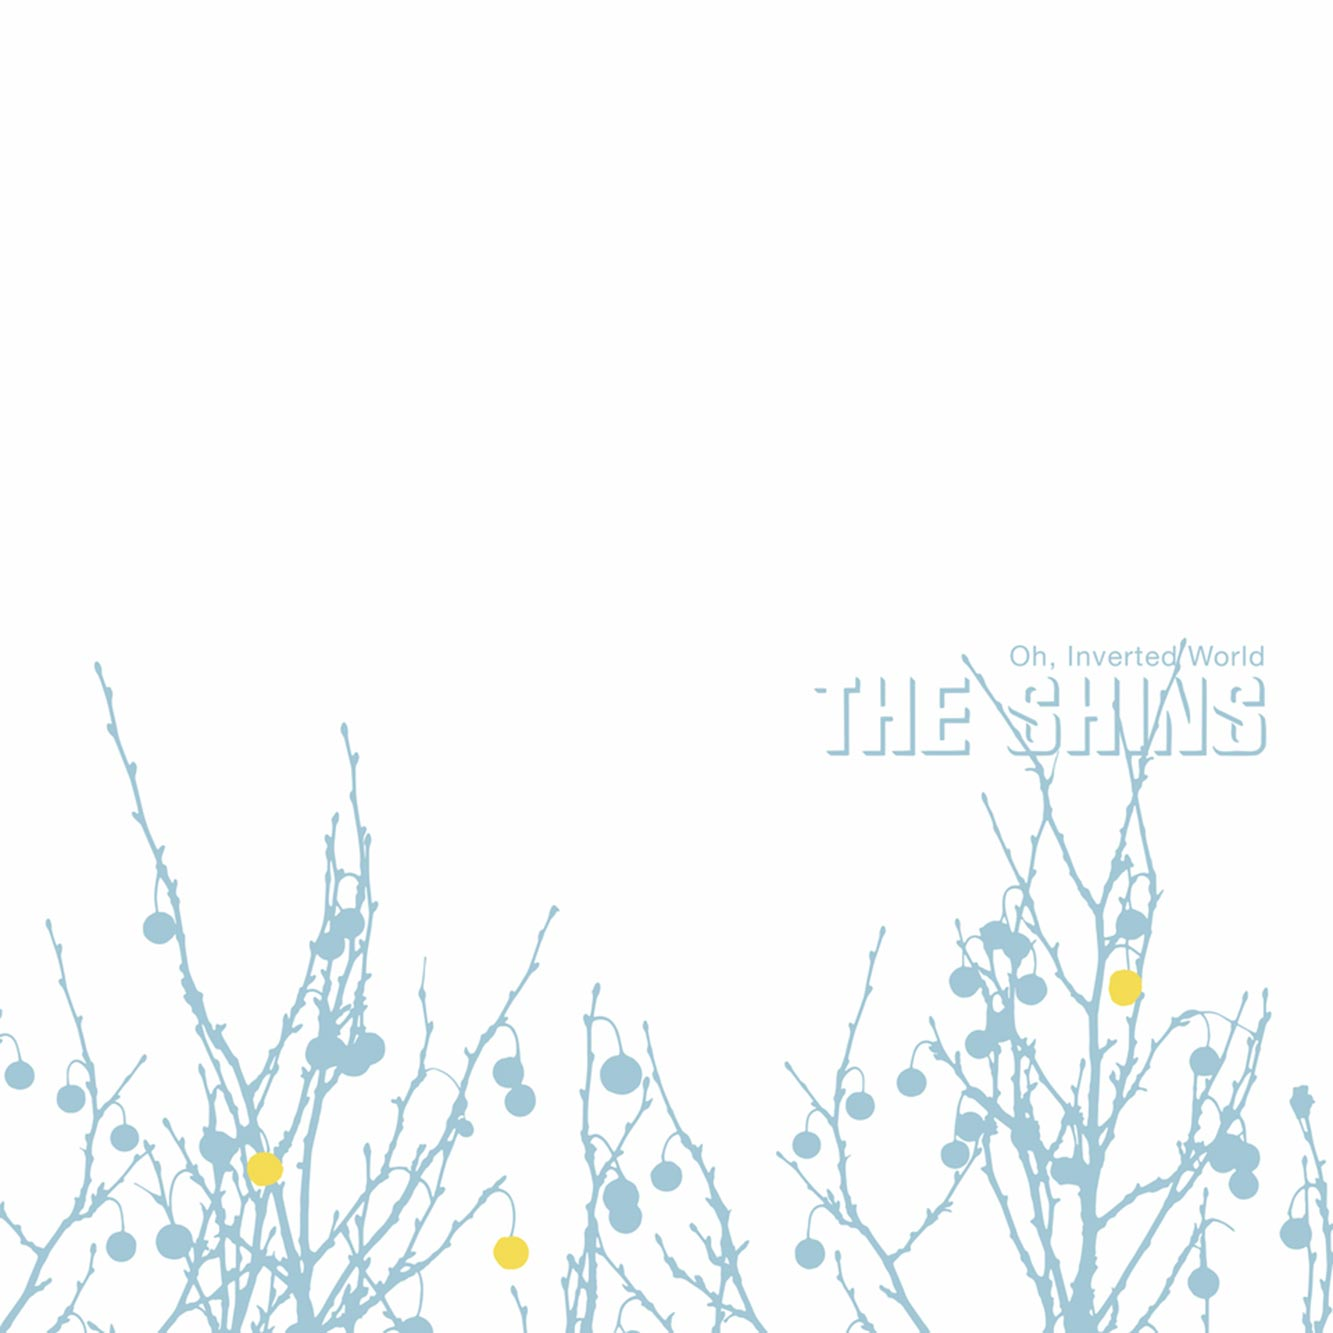 Oh, Inverted World by The Shins 20th Anniversary remaster